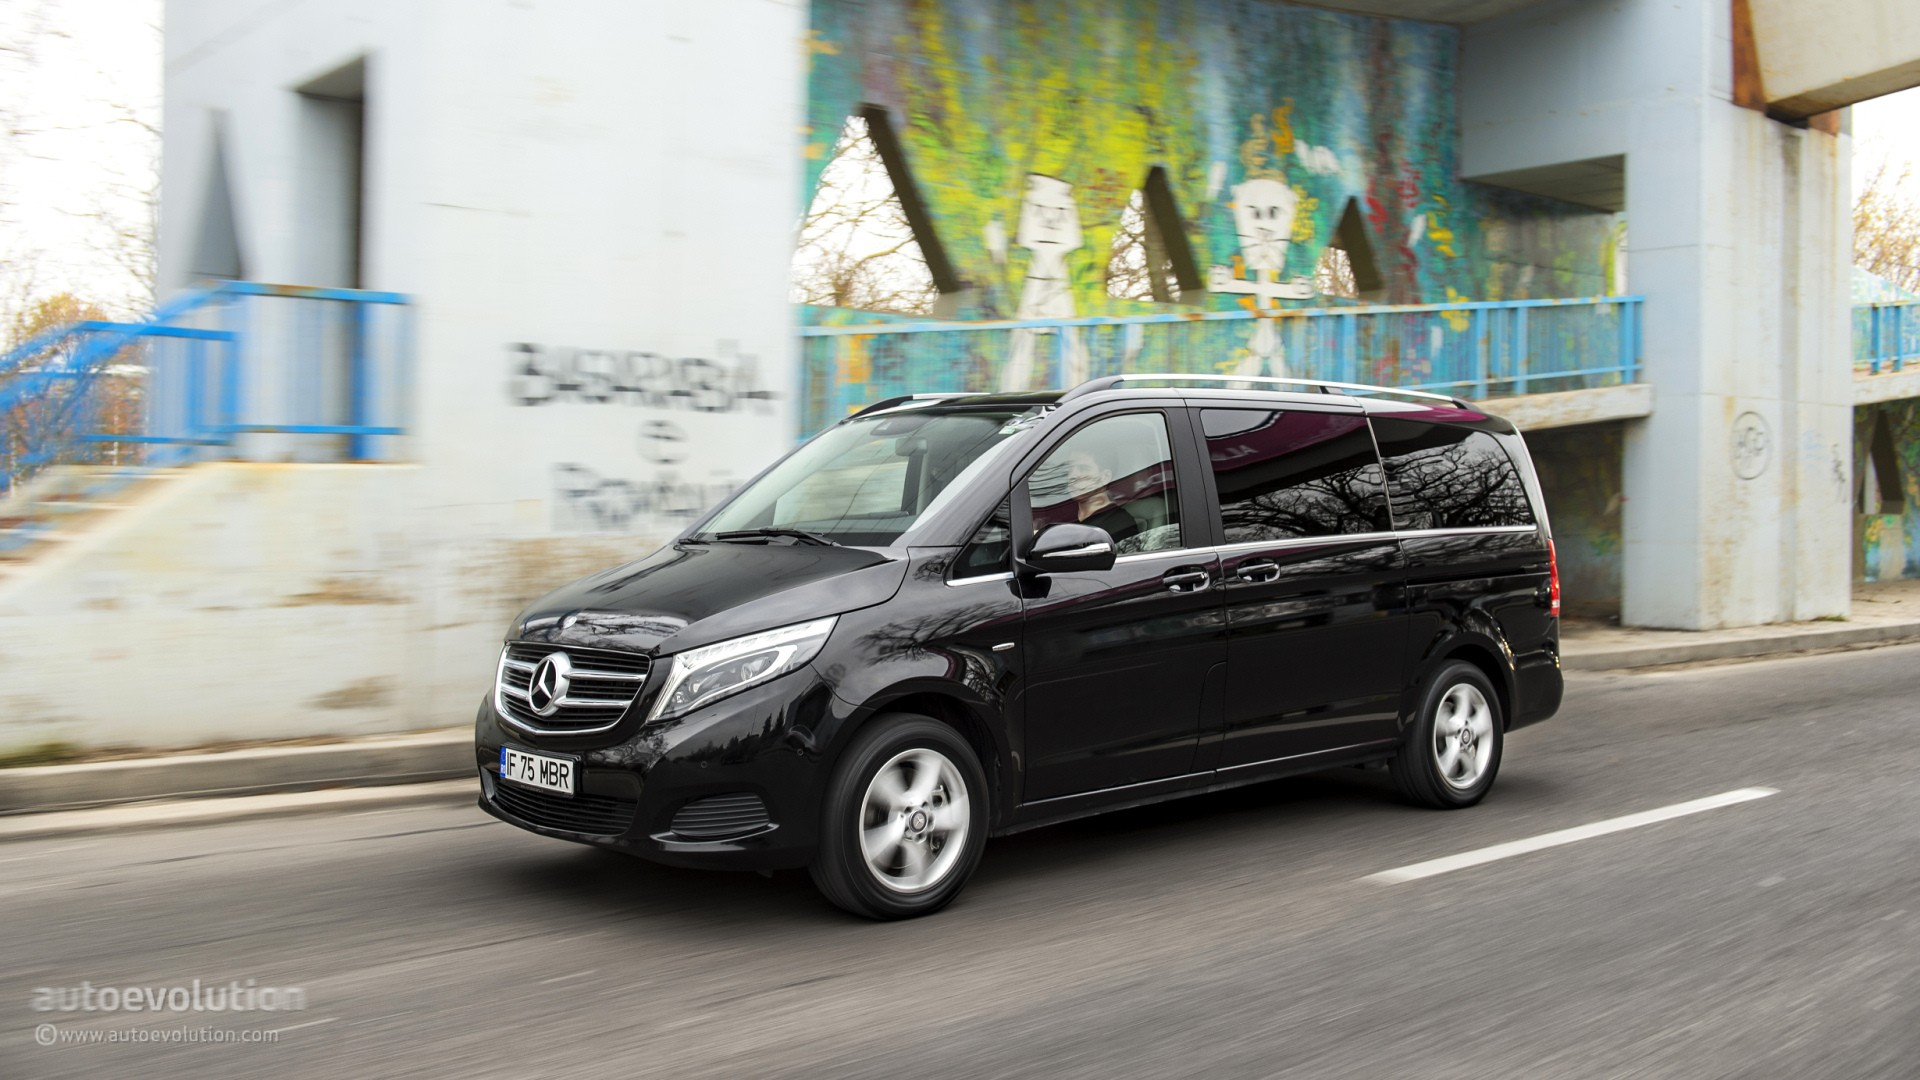 2015 mercedes benz v class like you 39 ve never seen it before hd wallpapers autoevolution. Black Bedroom Furniture Sets. Home Design Ideas